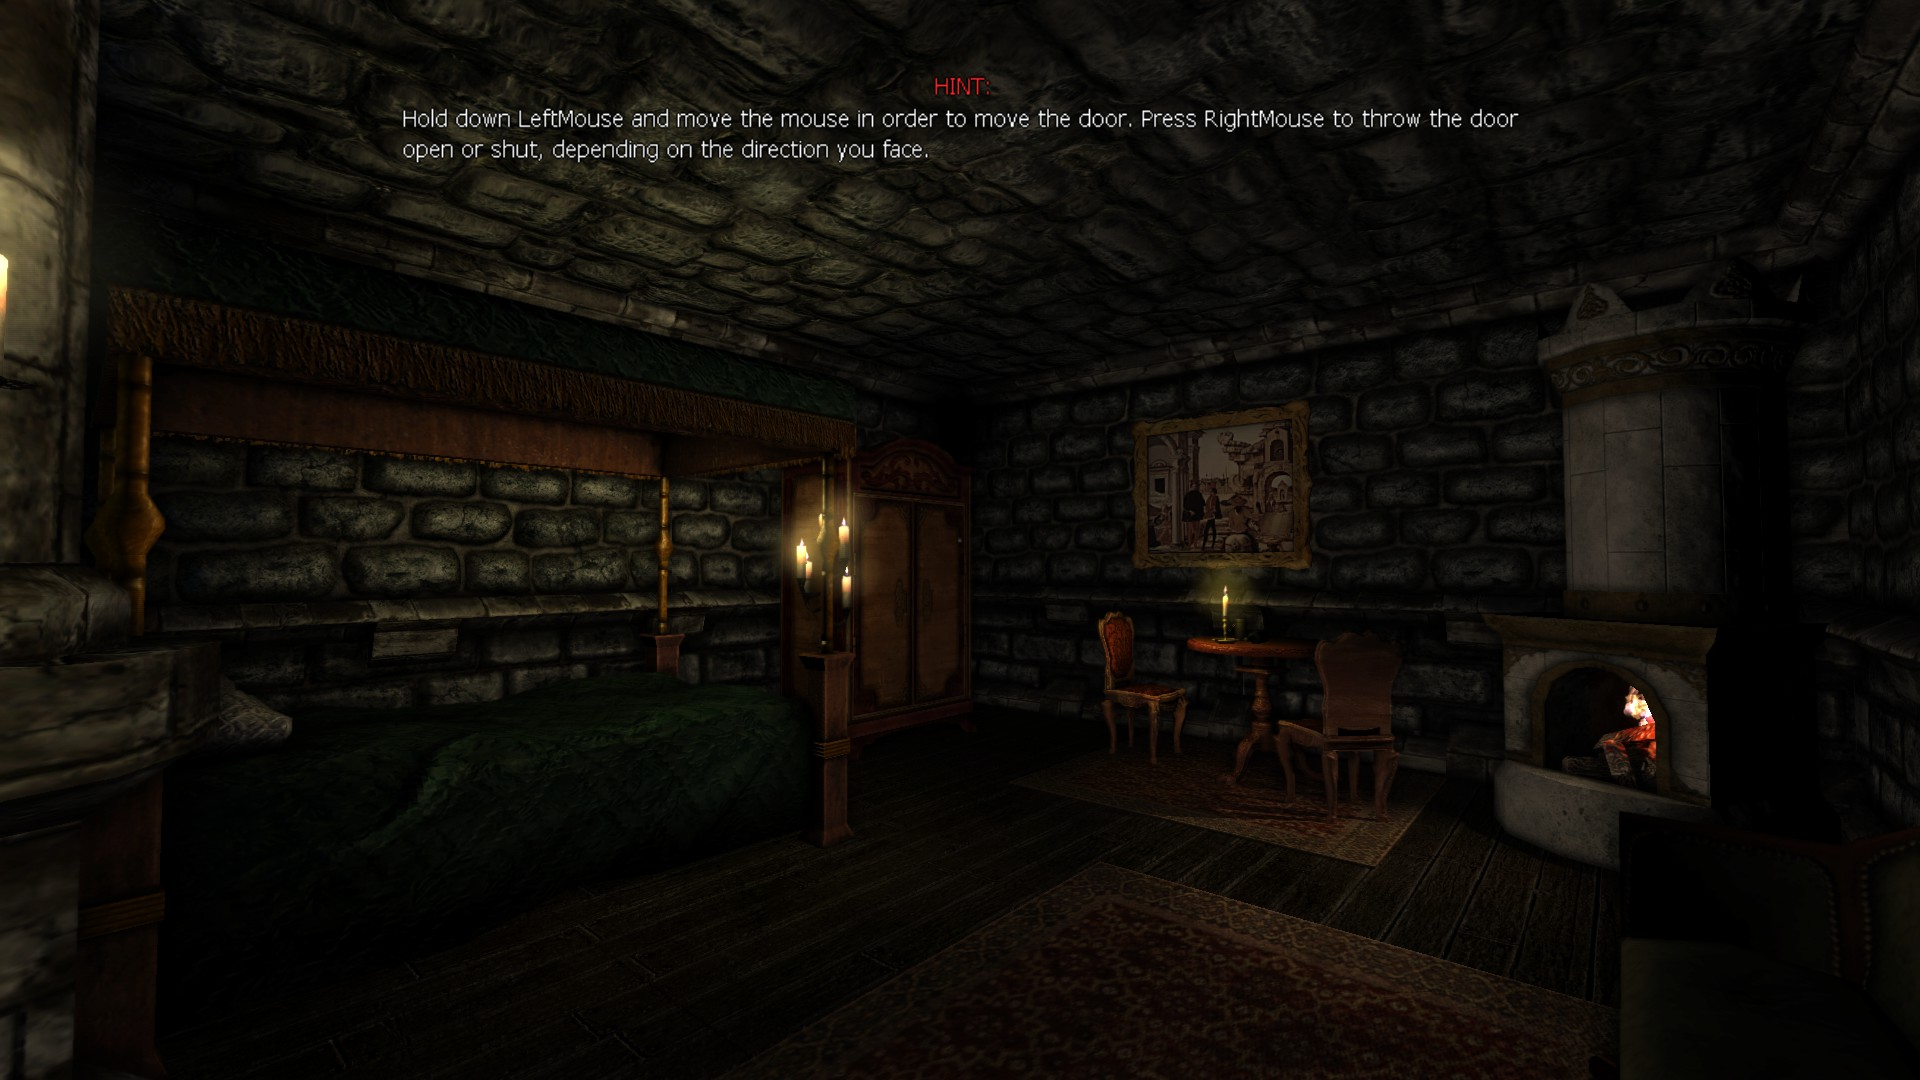 Free Animated Fireplace Wallpaper Room With Fireplace Image Black Forest Castle V2 Mod For